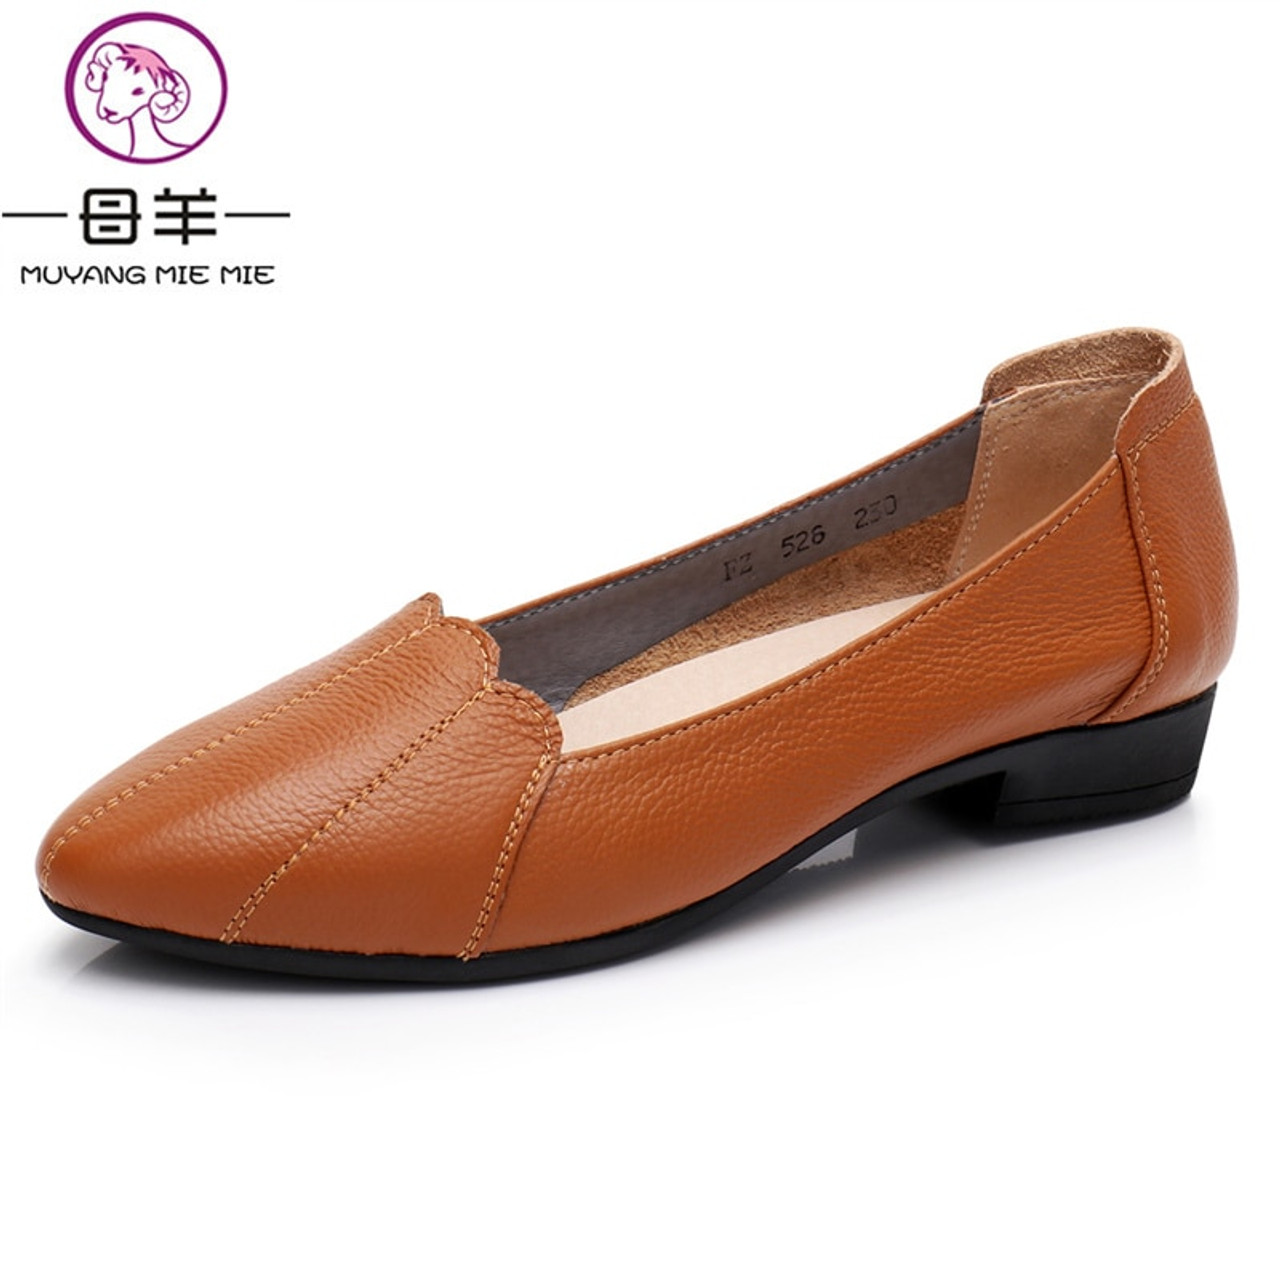 2ea93f681fd ... MUYANG MIE MIE Women Shoes Woman Genuine Leather Flat Shoes Female  Casual Work Ballet Flats Women ...